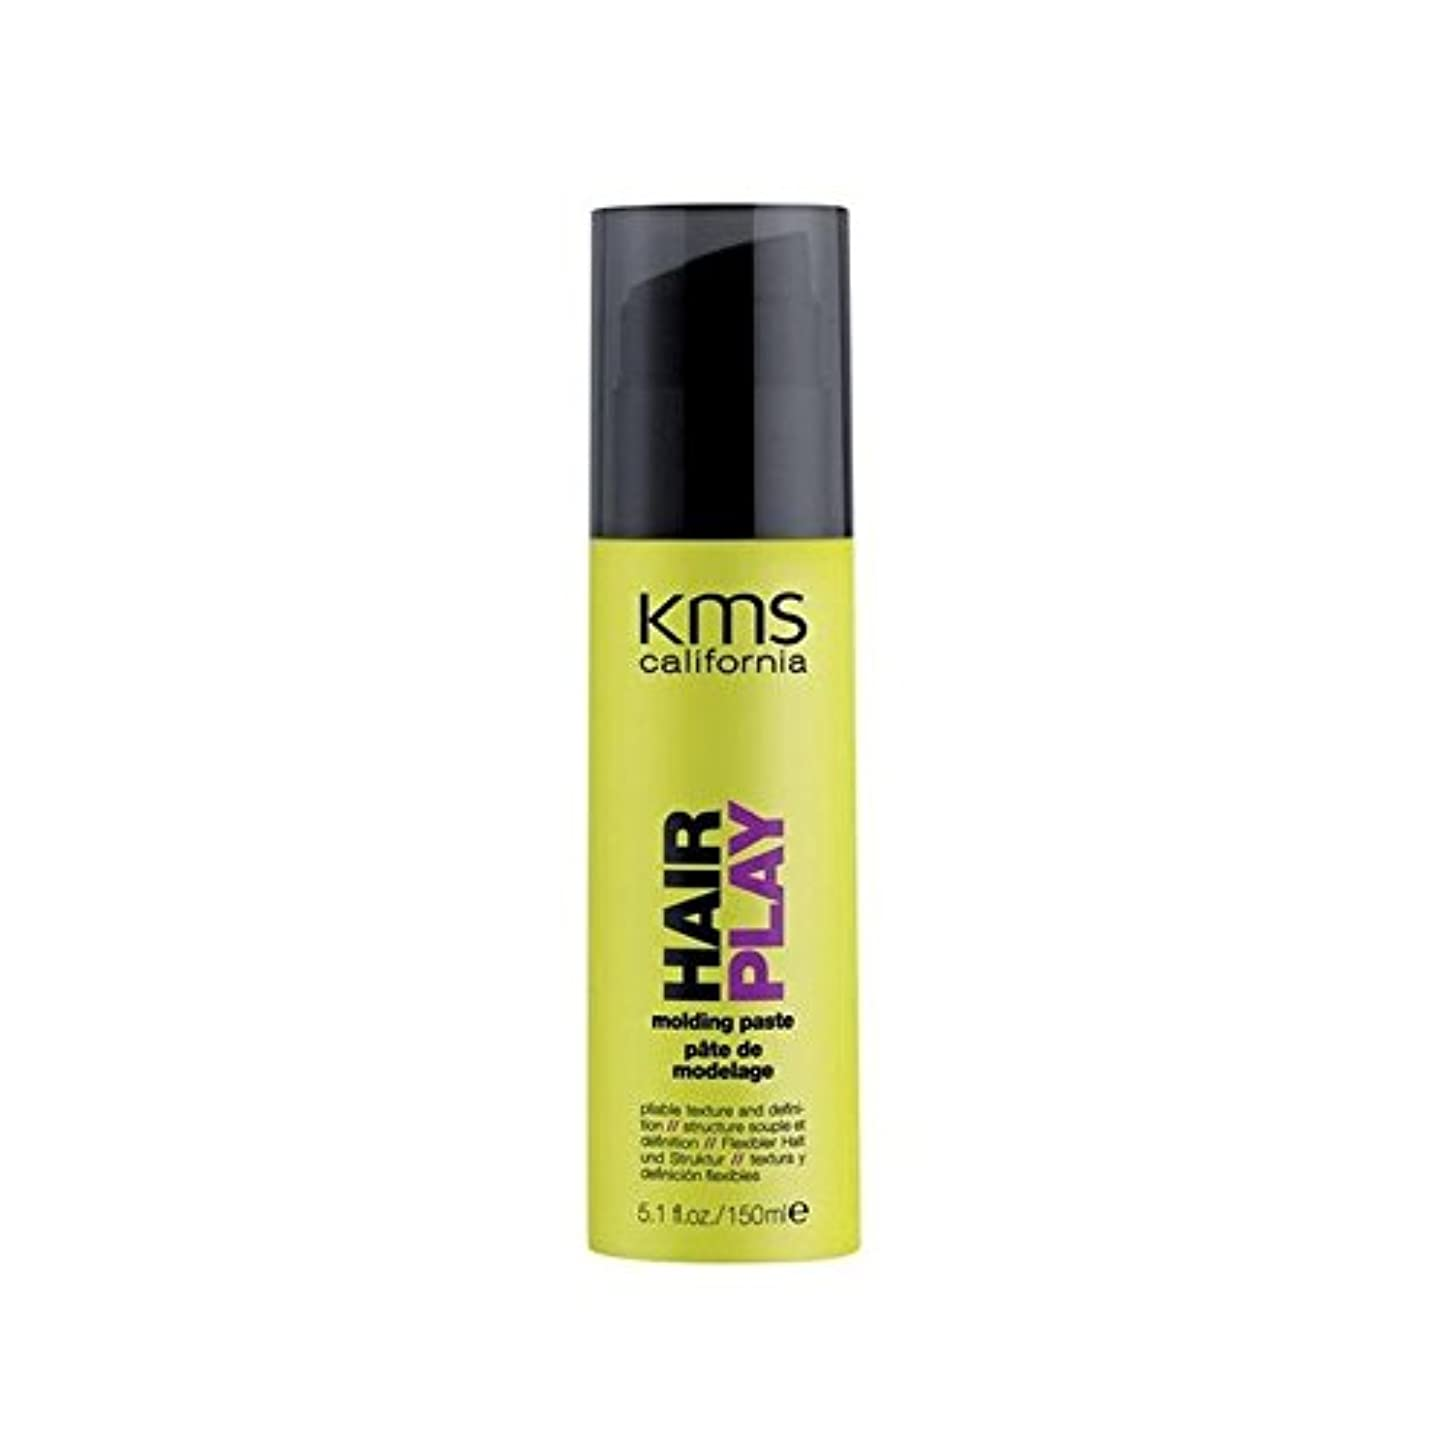 Kms California Hairplay Molding Paste (150ml) - カリフォルニア成形ペースト(150ミリリットル) [並行輸入品]